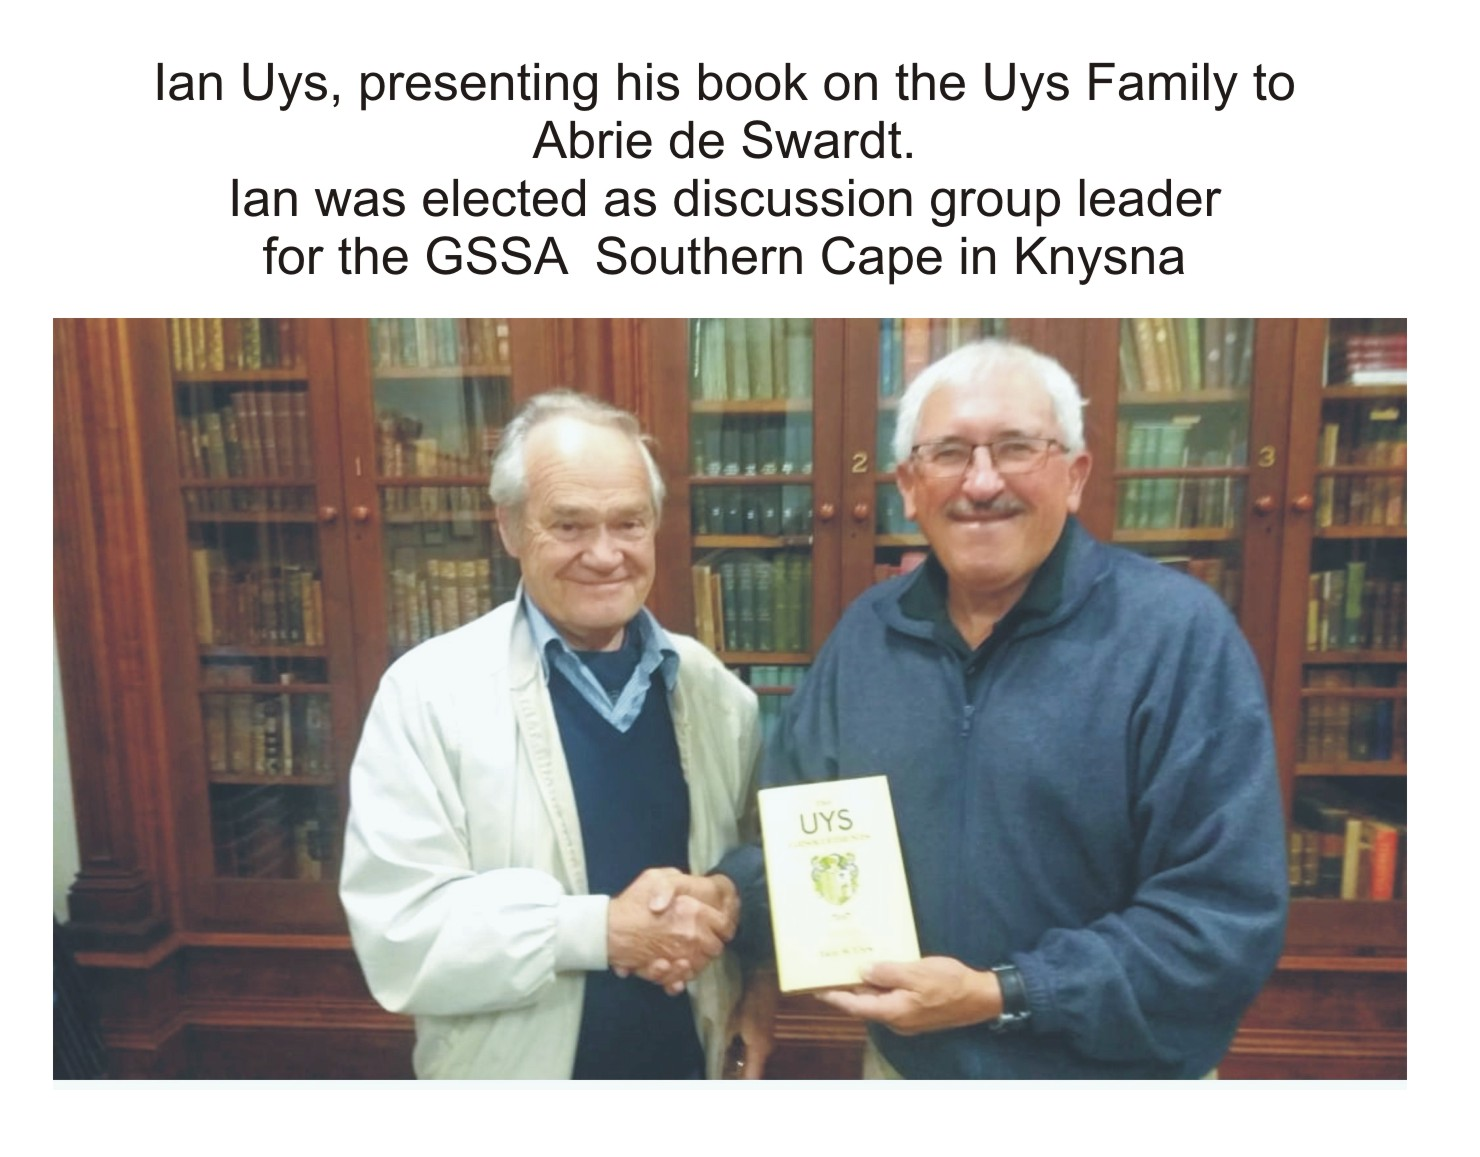 Ian Uyspresents his book on the Uys family to Abrie de Swardt.Ian was elected as discussion group leader of the GSSA Southern Cape in Knysna